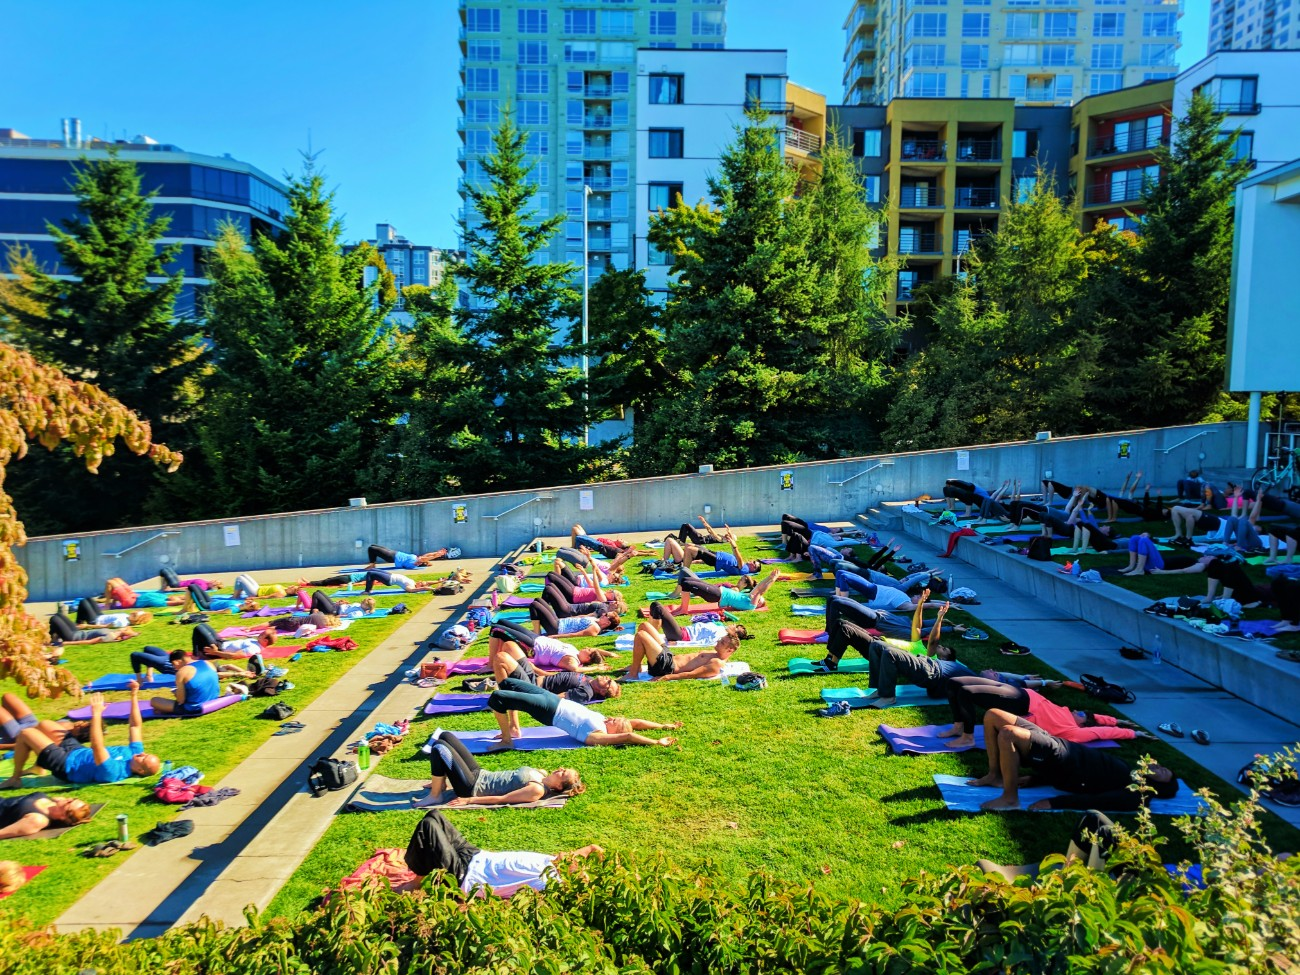 Public outdoor yoga at Olympic Sculpture Park Seattle 1